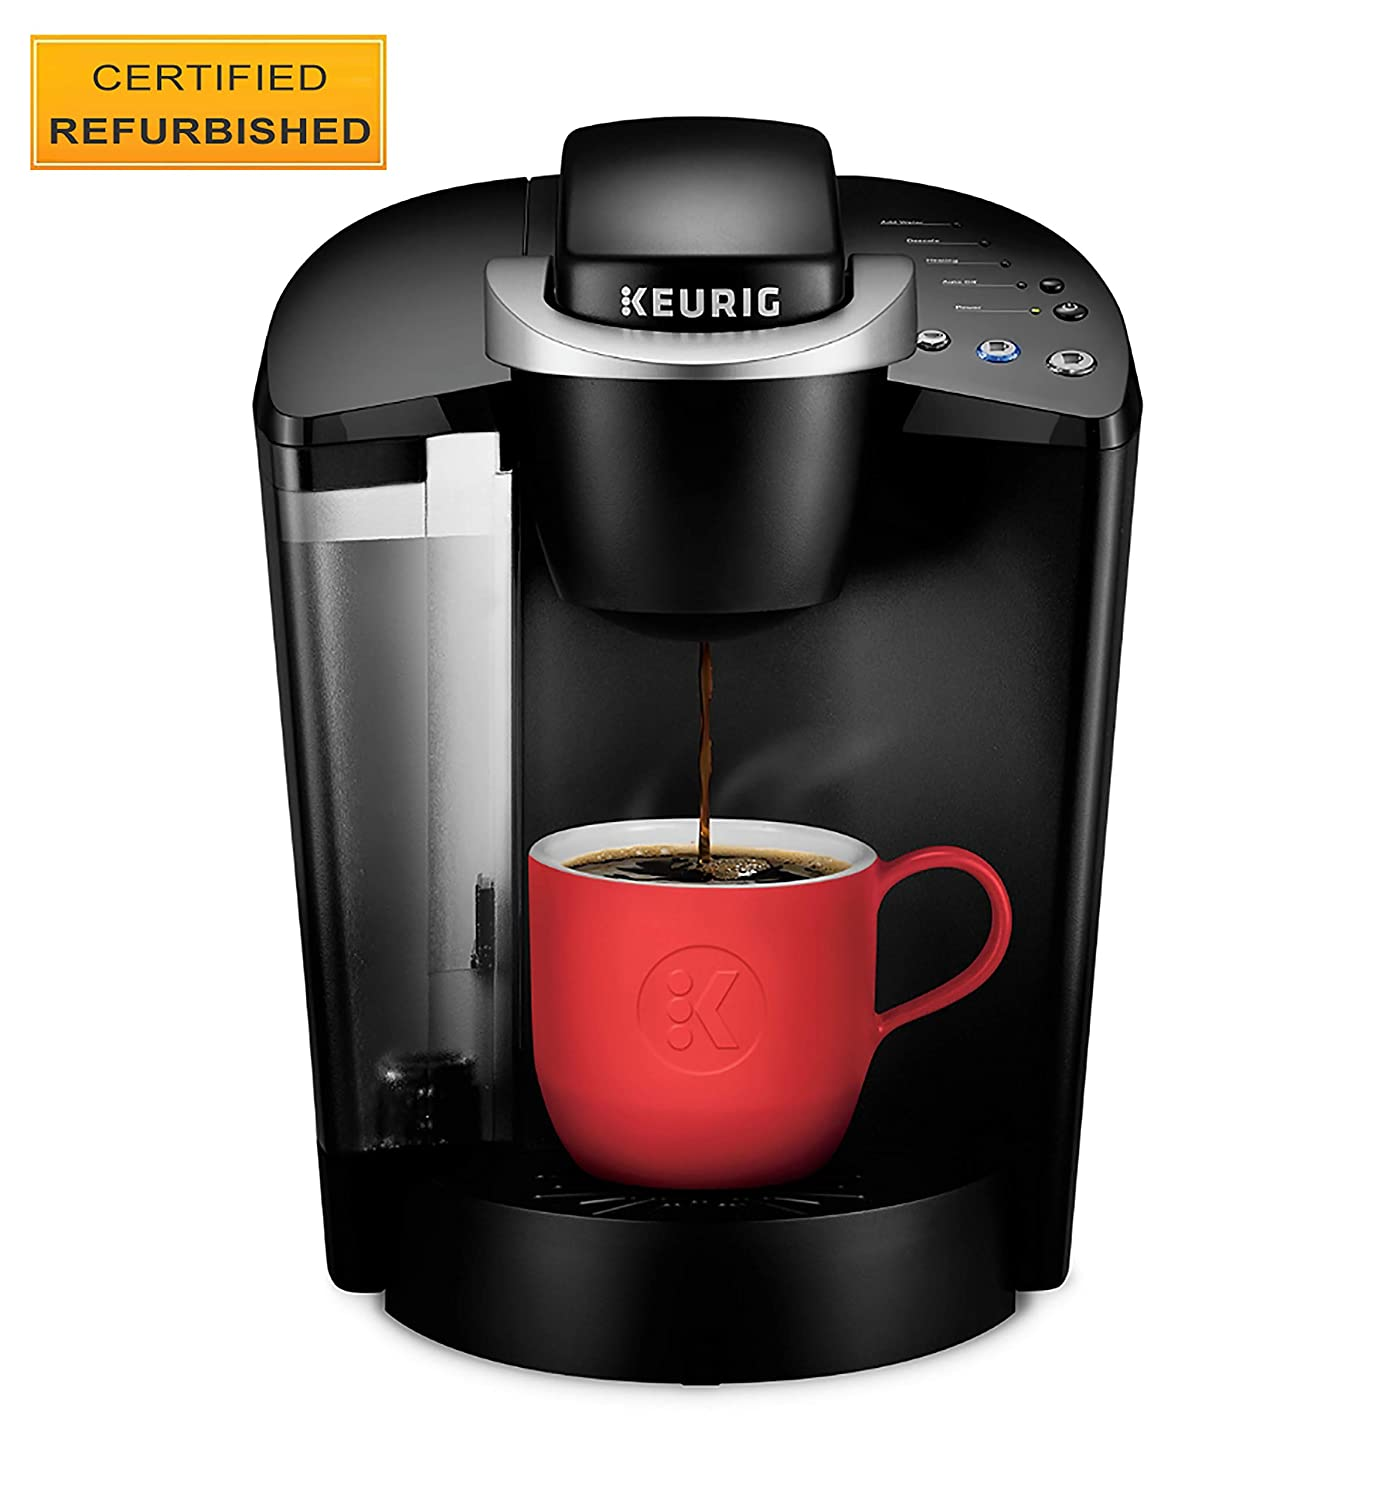 Keurig 5000341539 K Classic Coffee Maker One Size Black